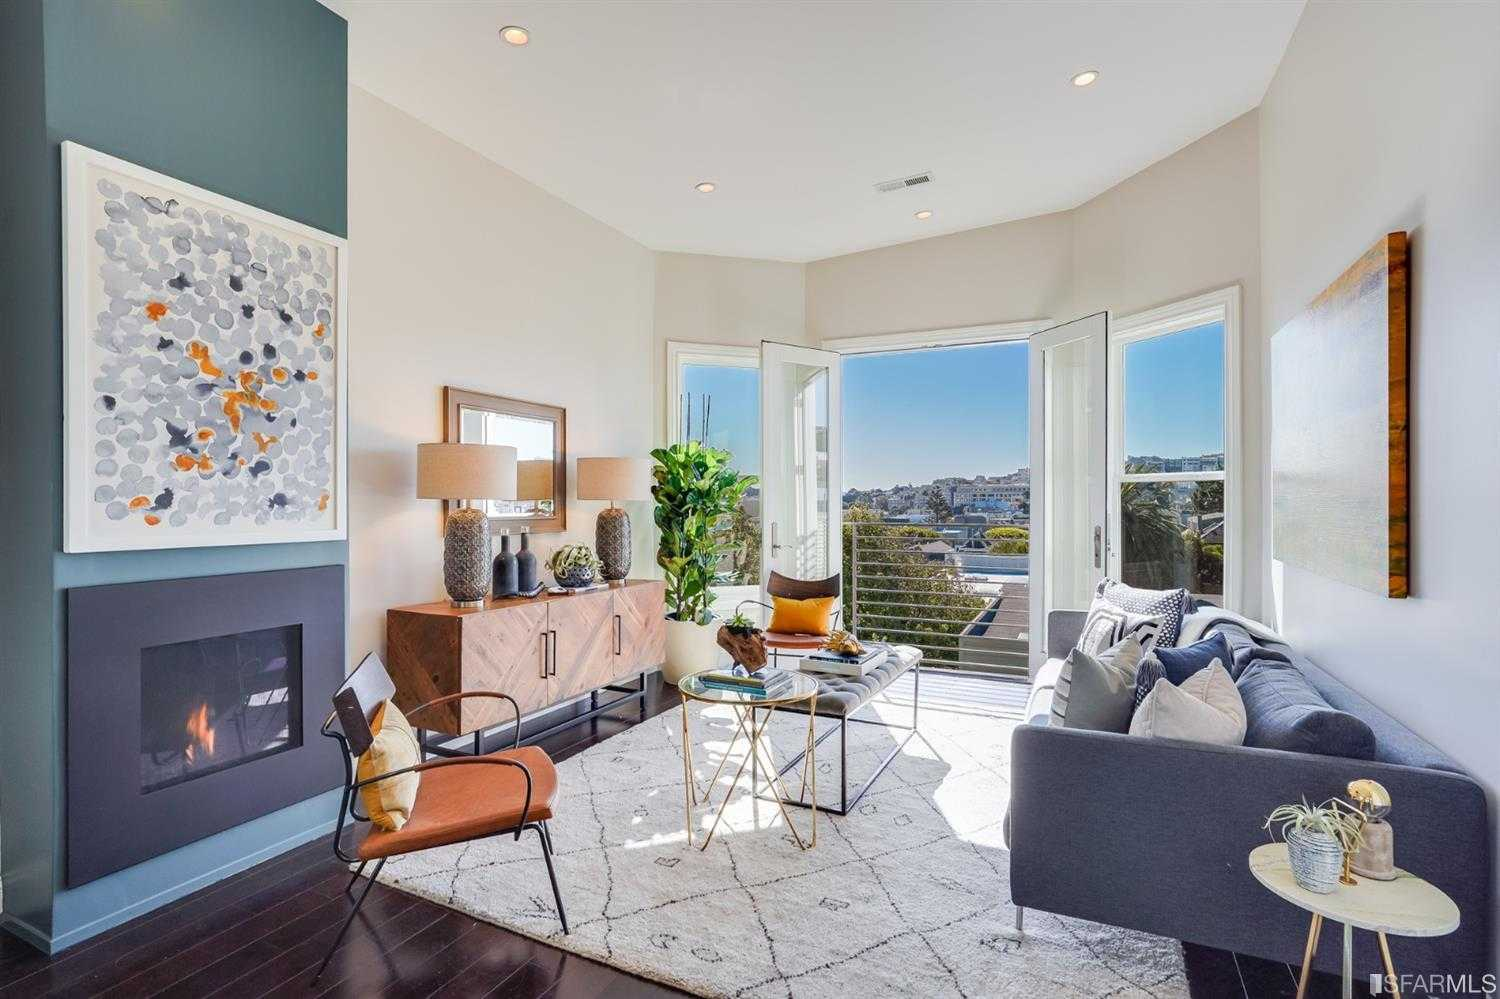 3055 California St # B San Francisco, CA 94115